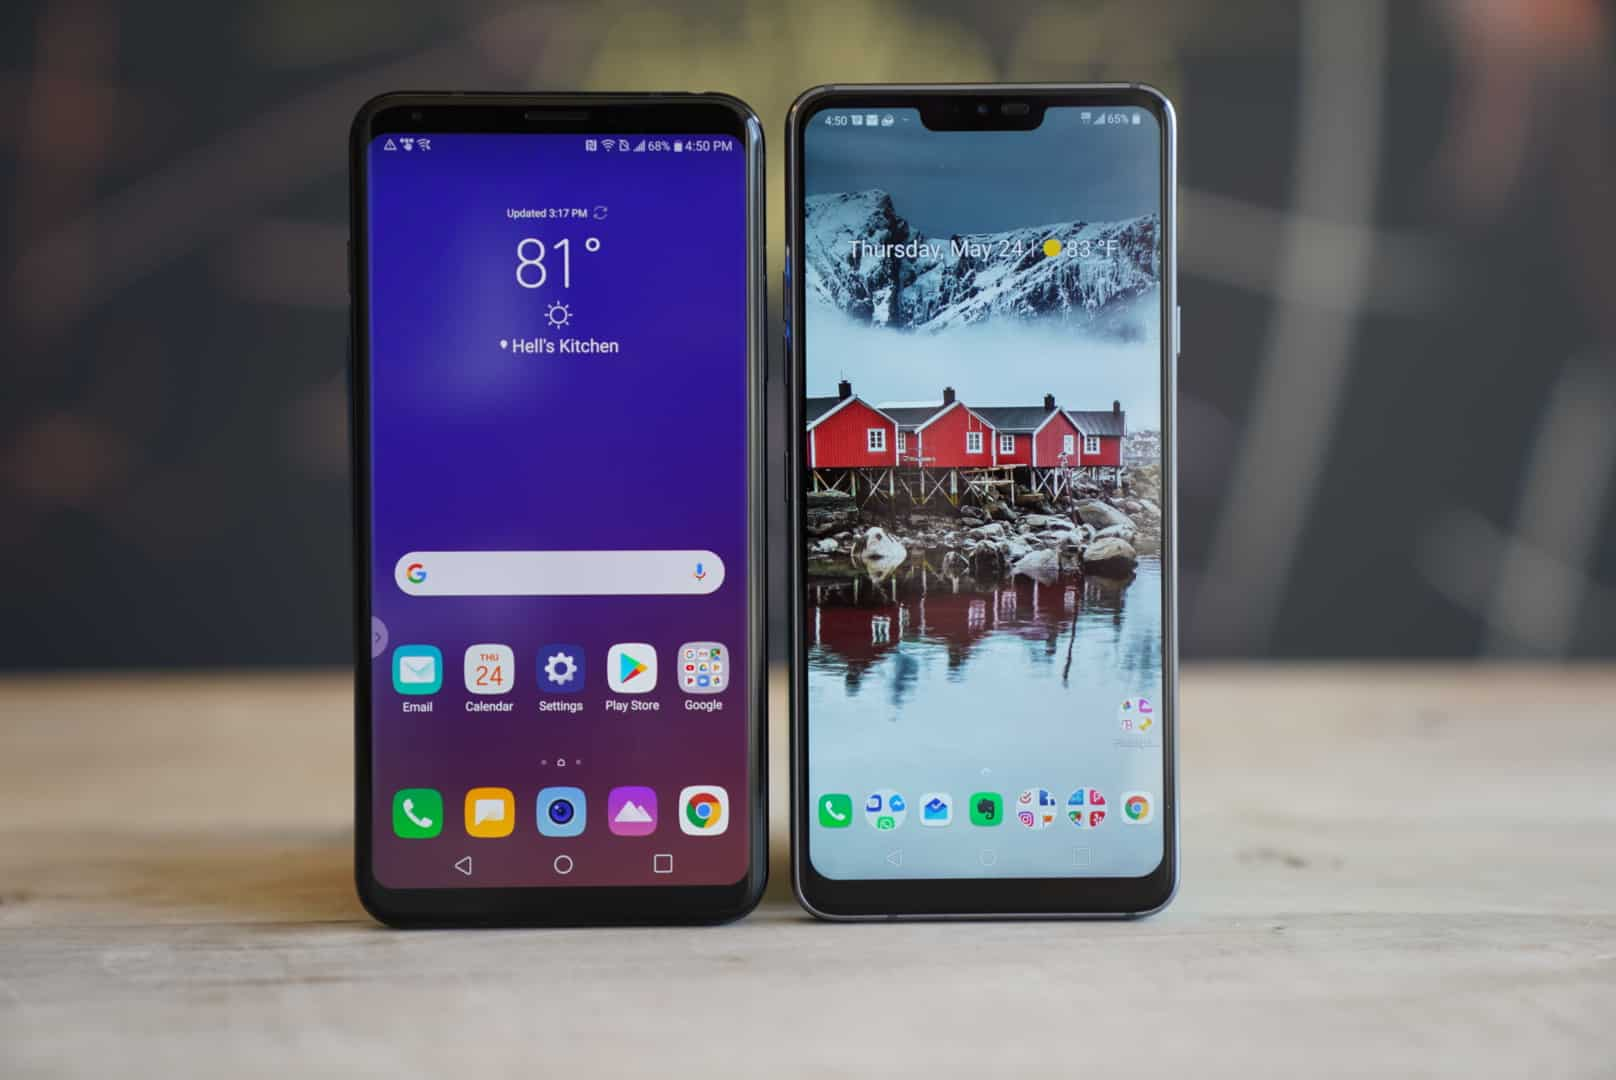 LG V35 vs LG G7: What's the Difference?